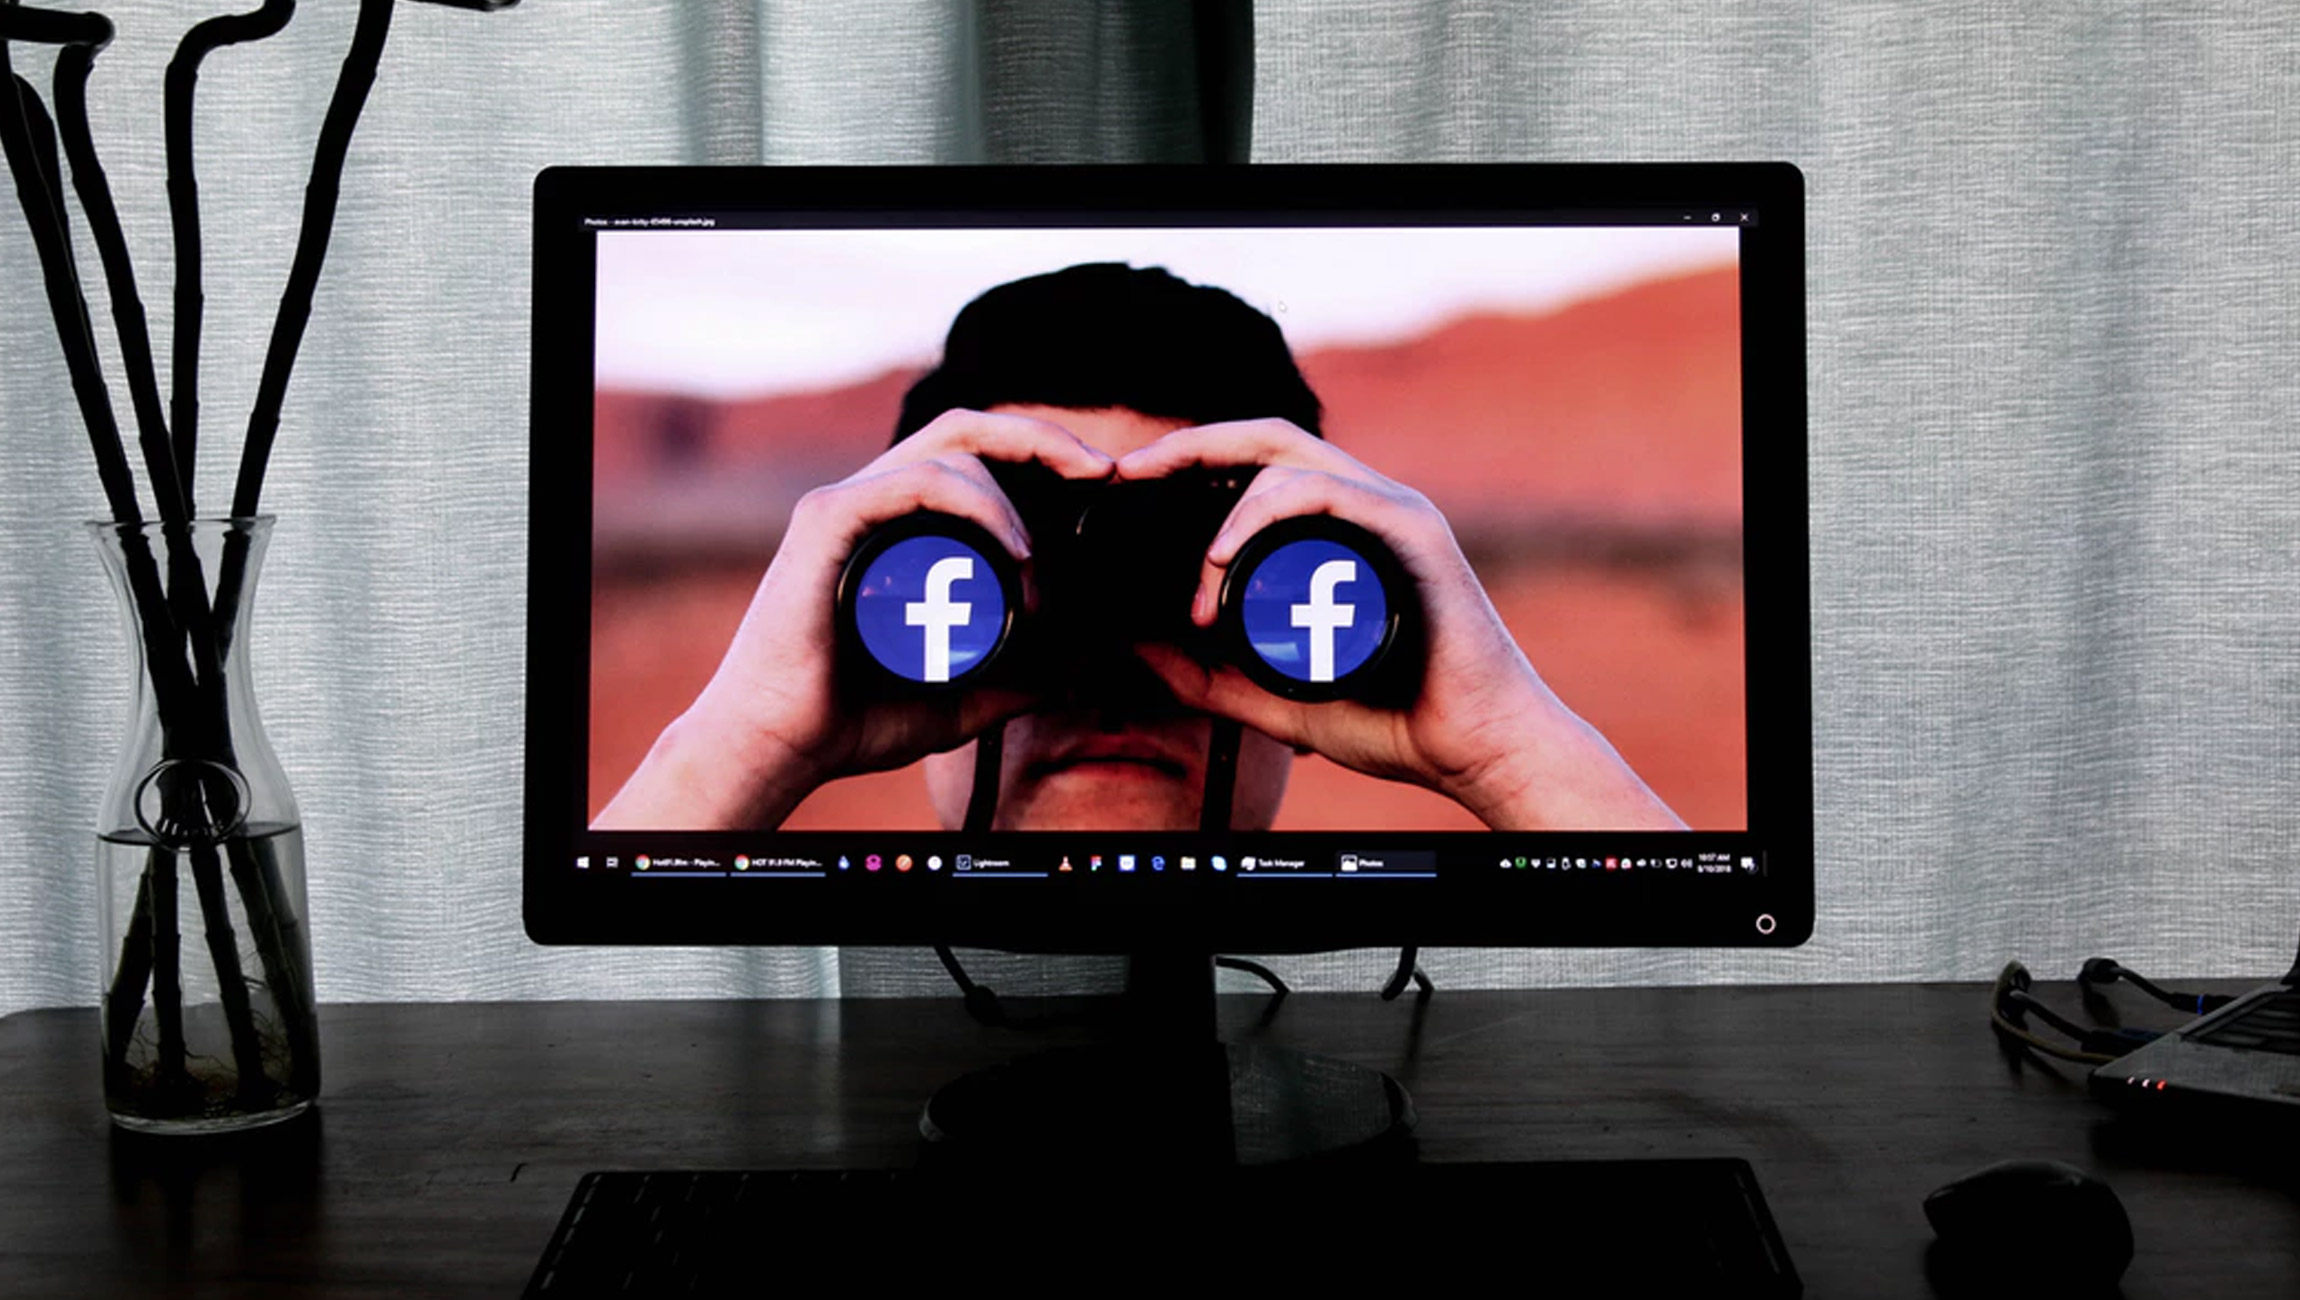 Why Has Zuckerberg Taken a Bold Stride Towards Becoming a 'Privacy Focused' Platform?